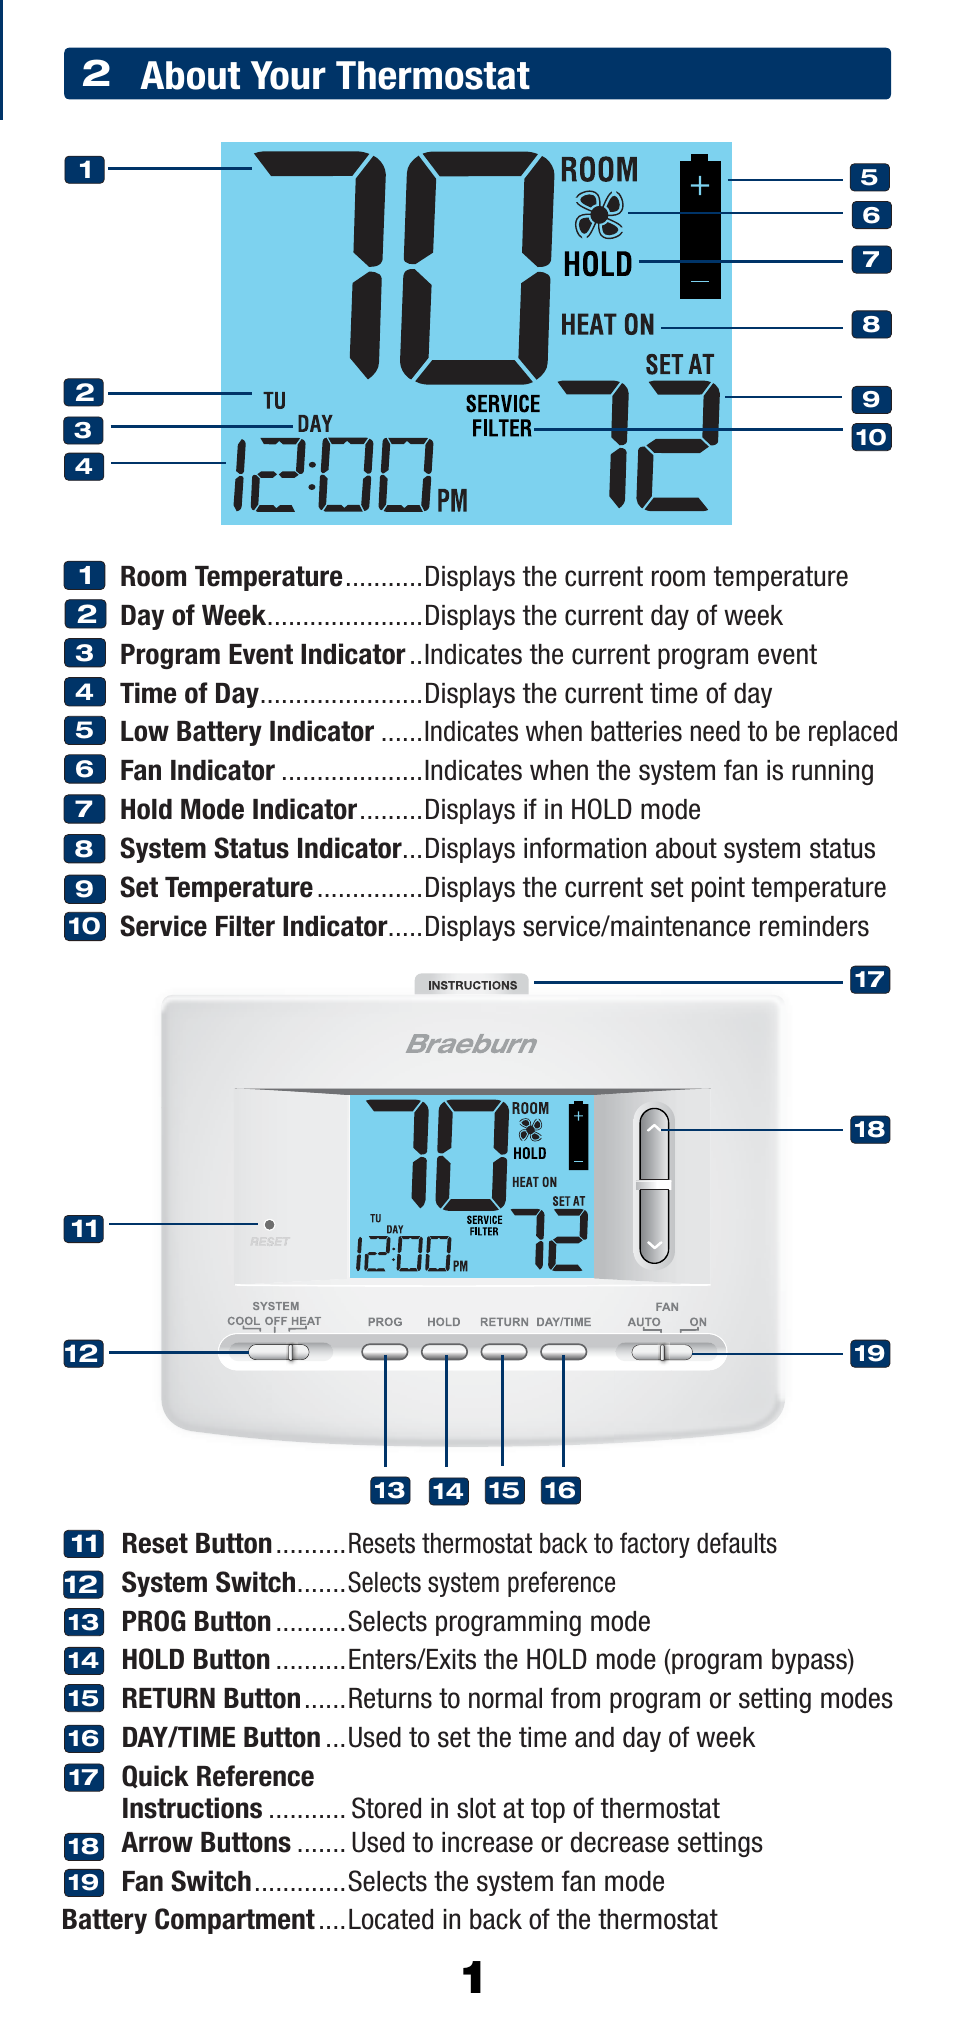 About Your Thermostat